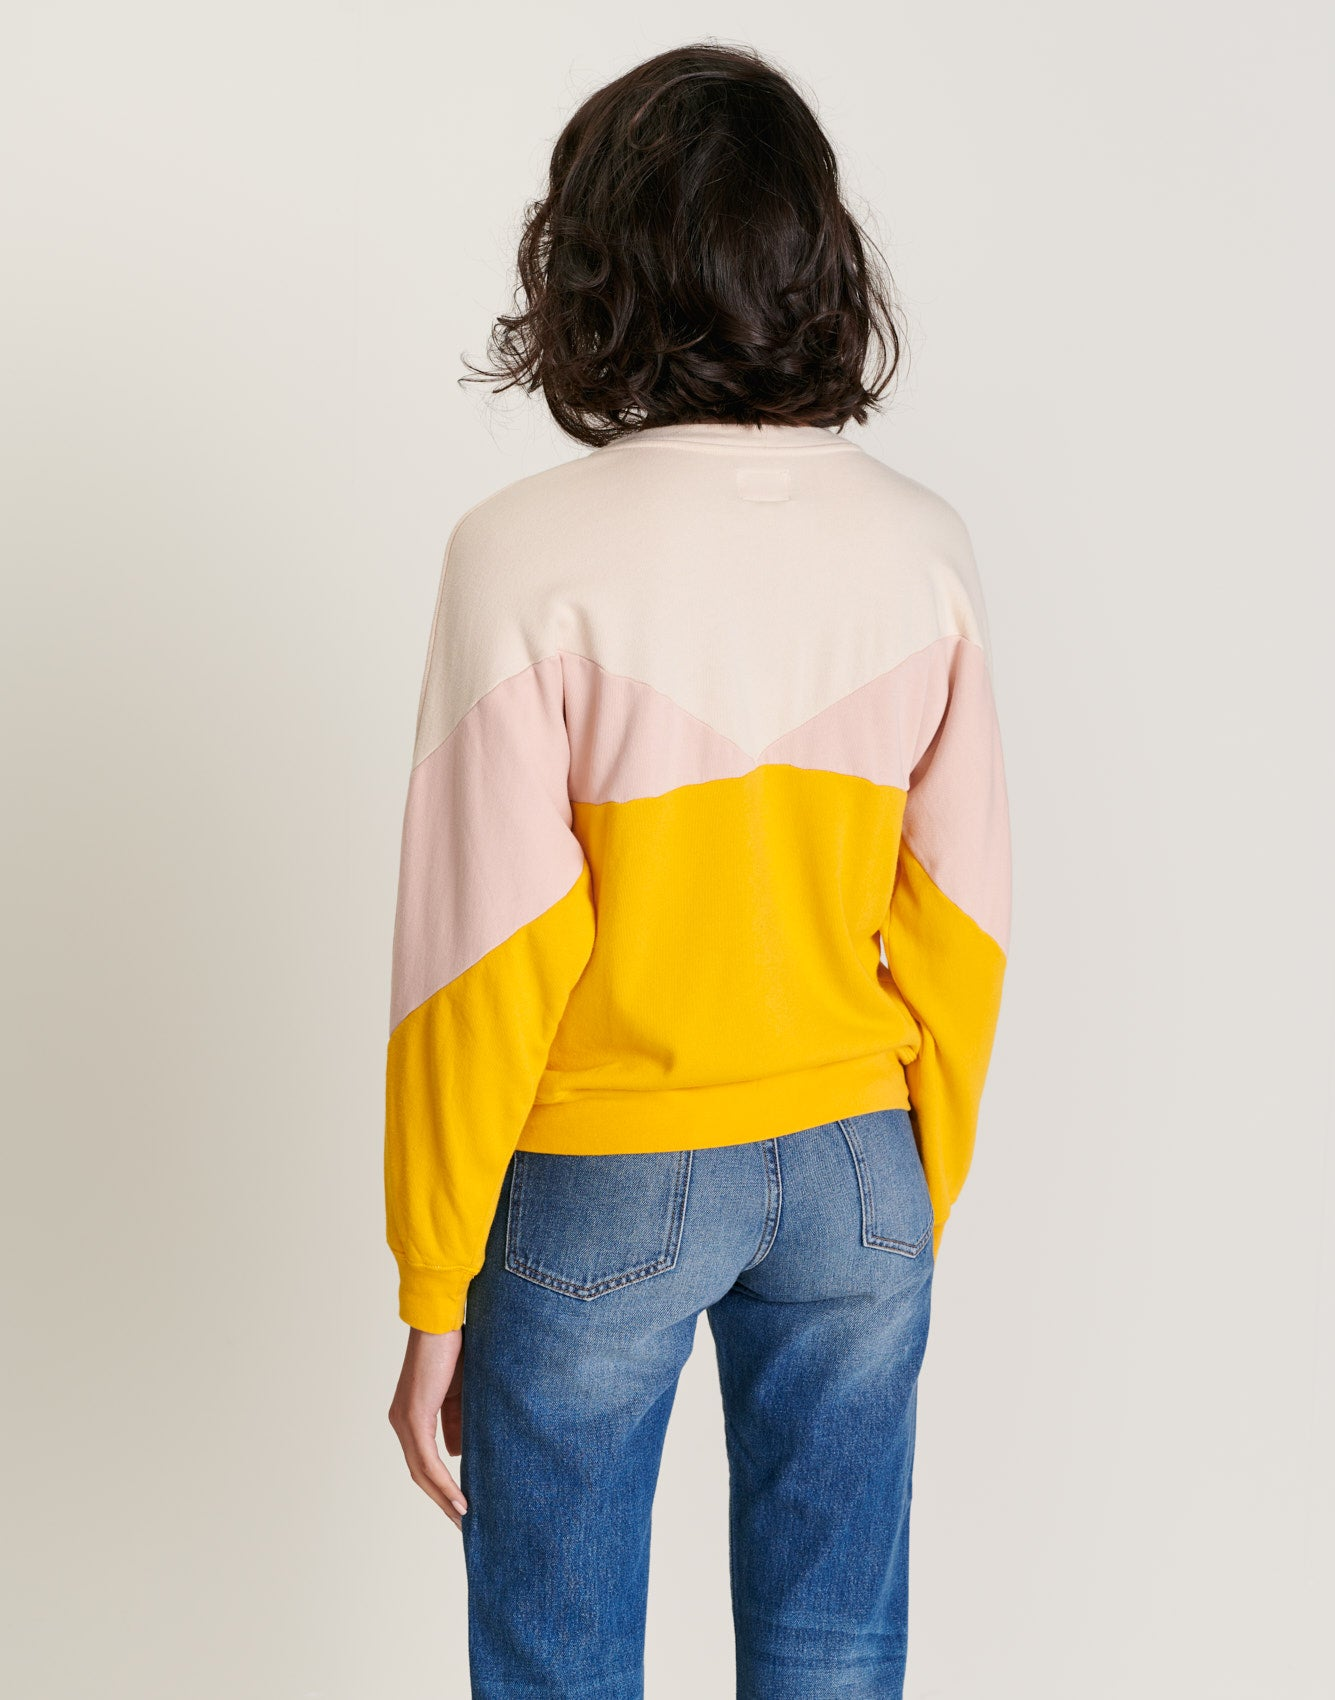 Bellerose | VIKKY BRIGHT SWEATSHIRT